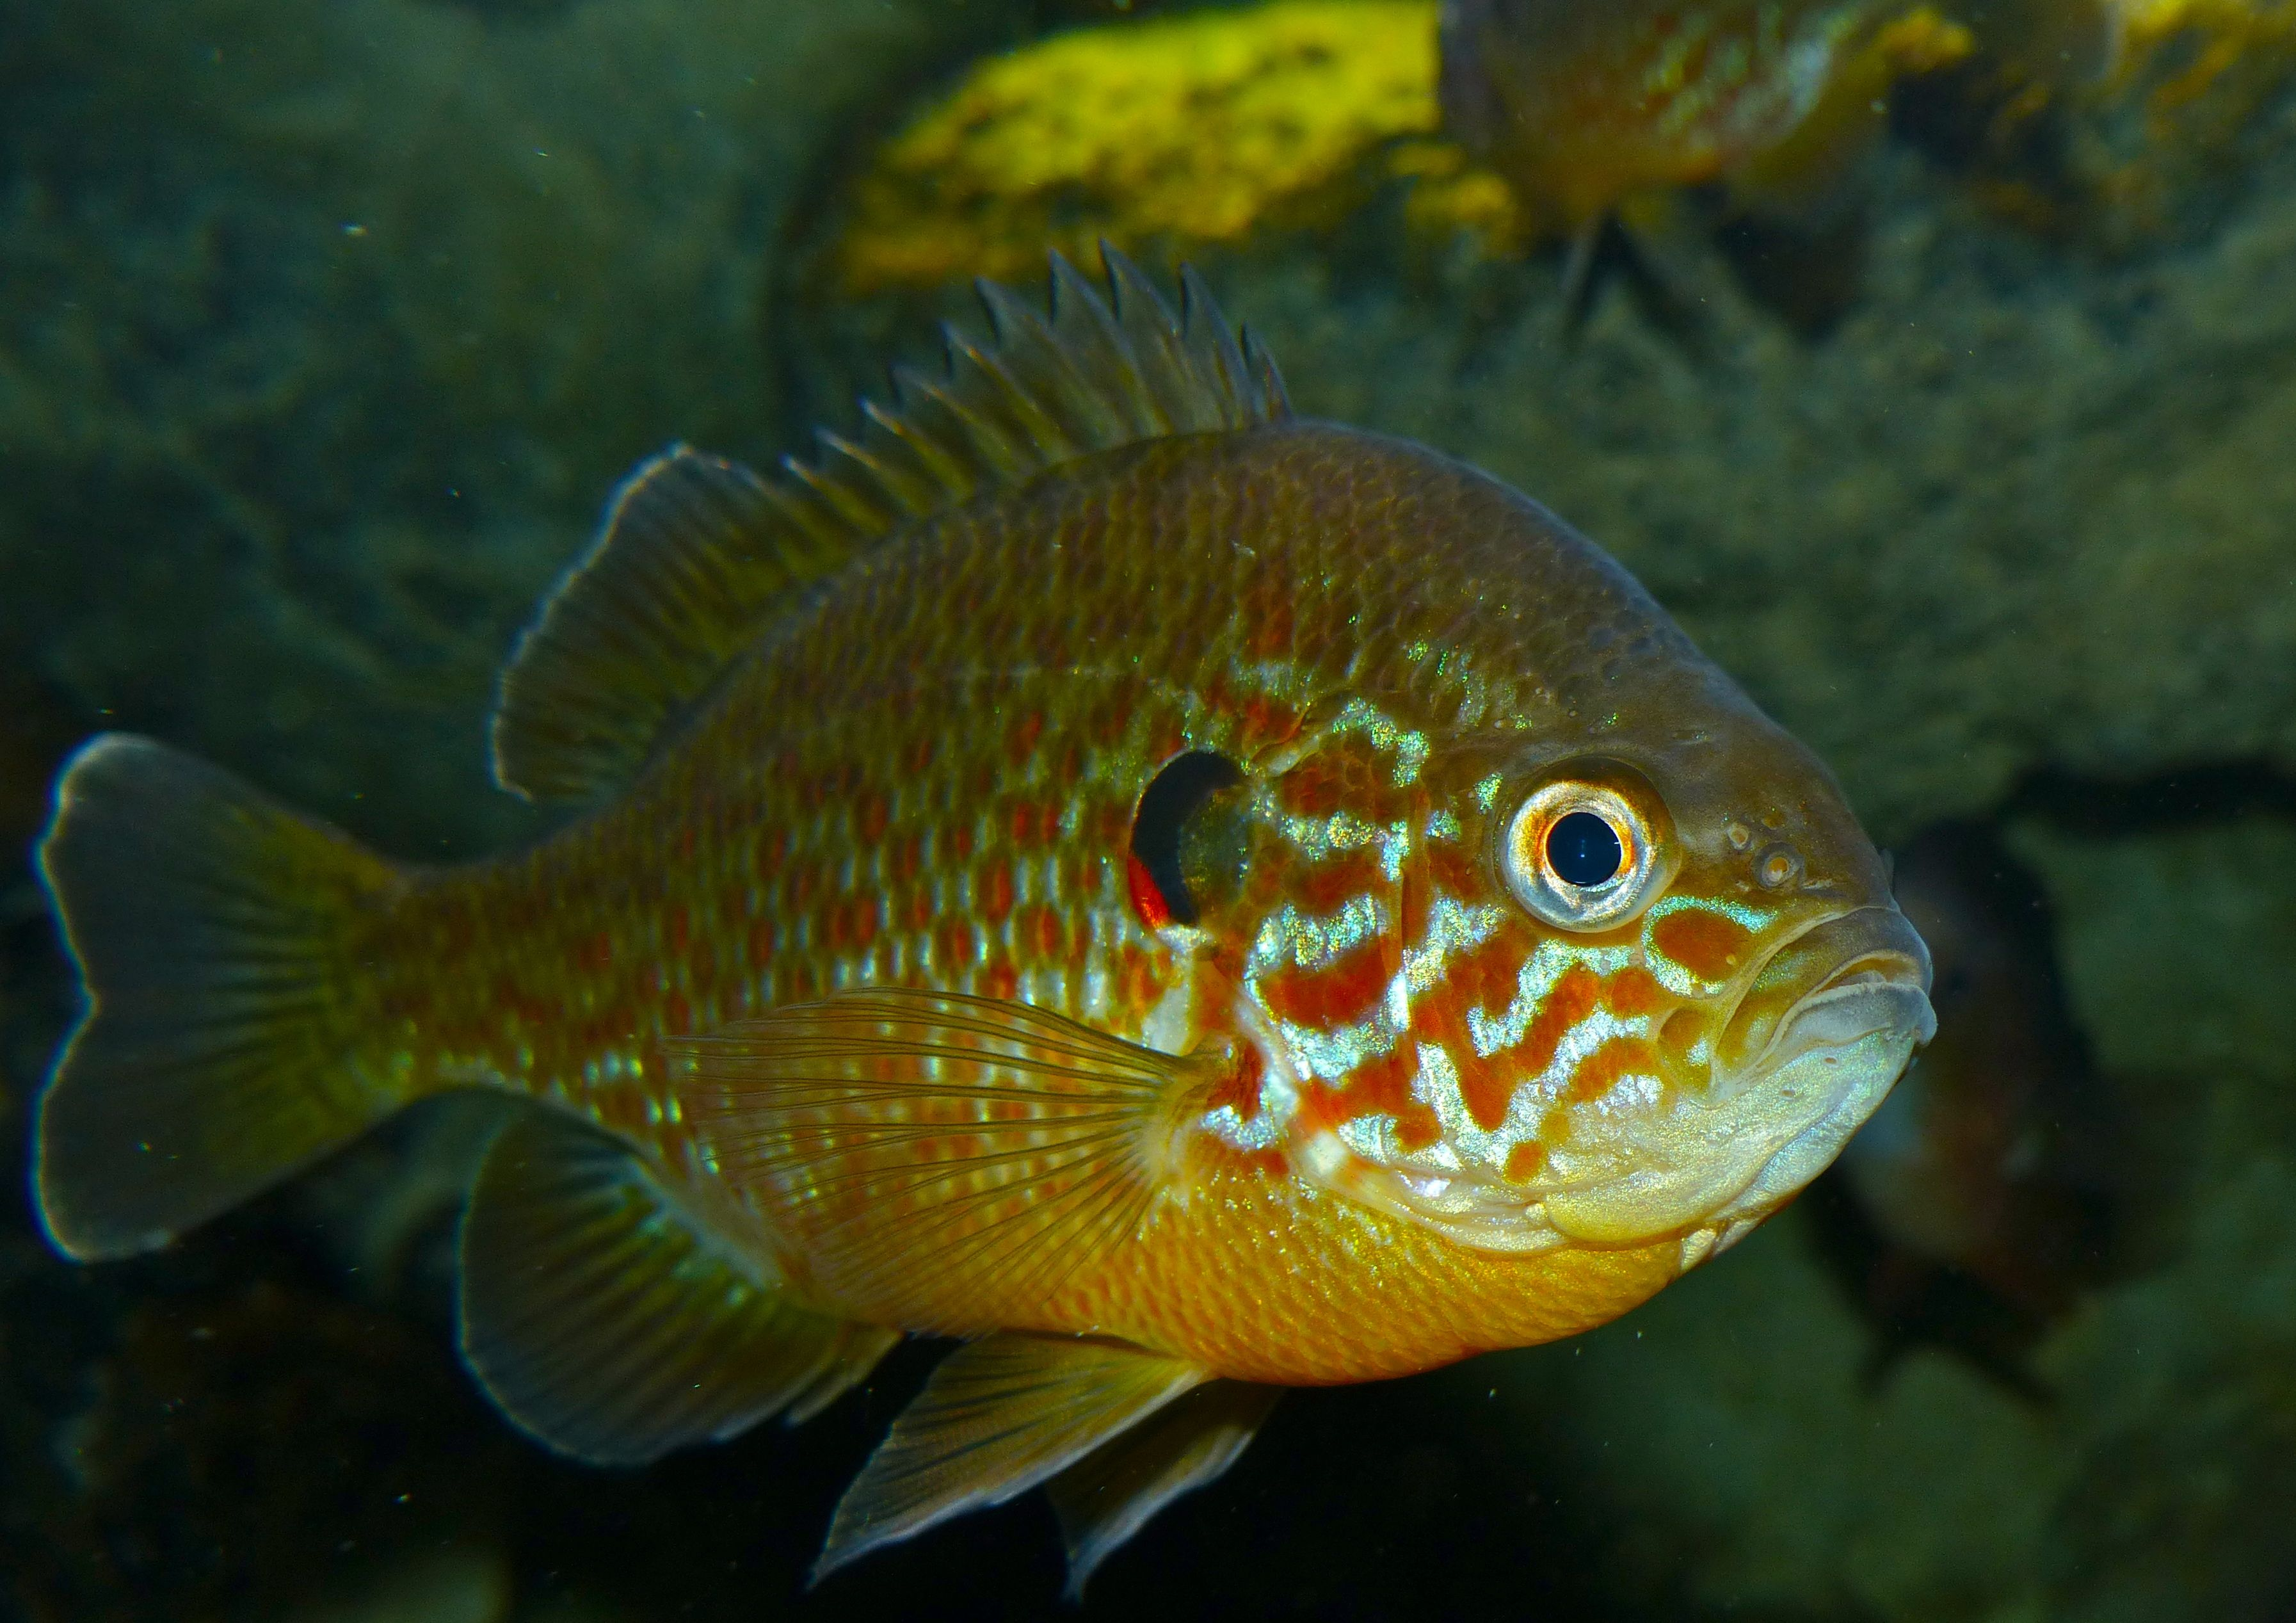 The pumpkinseed (Lepomis gibbosus) is a North American